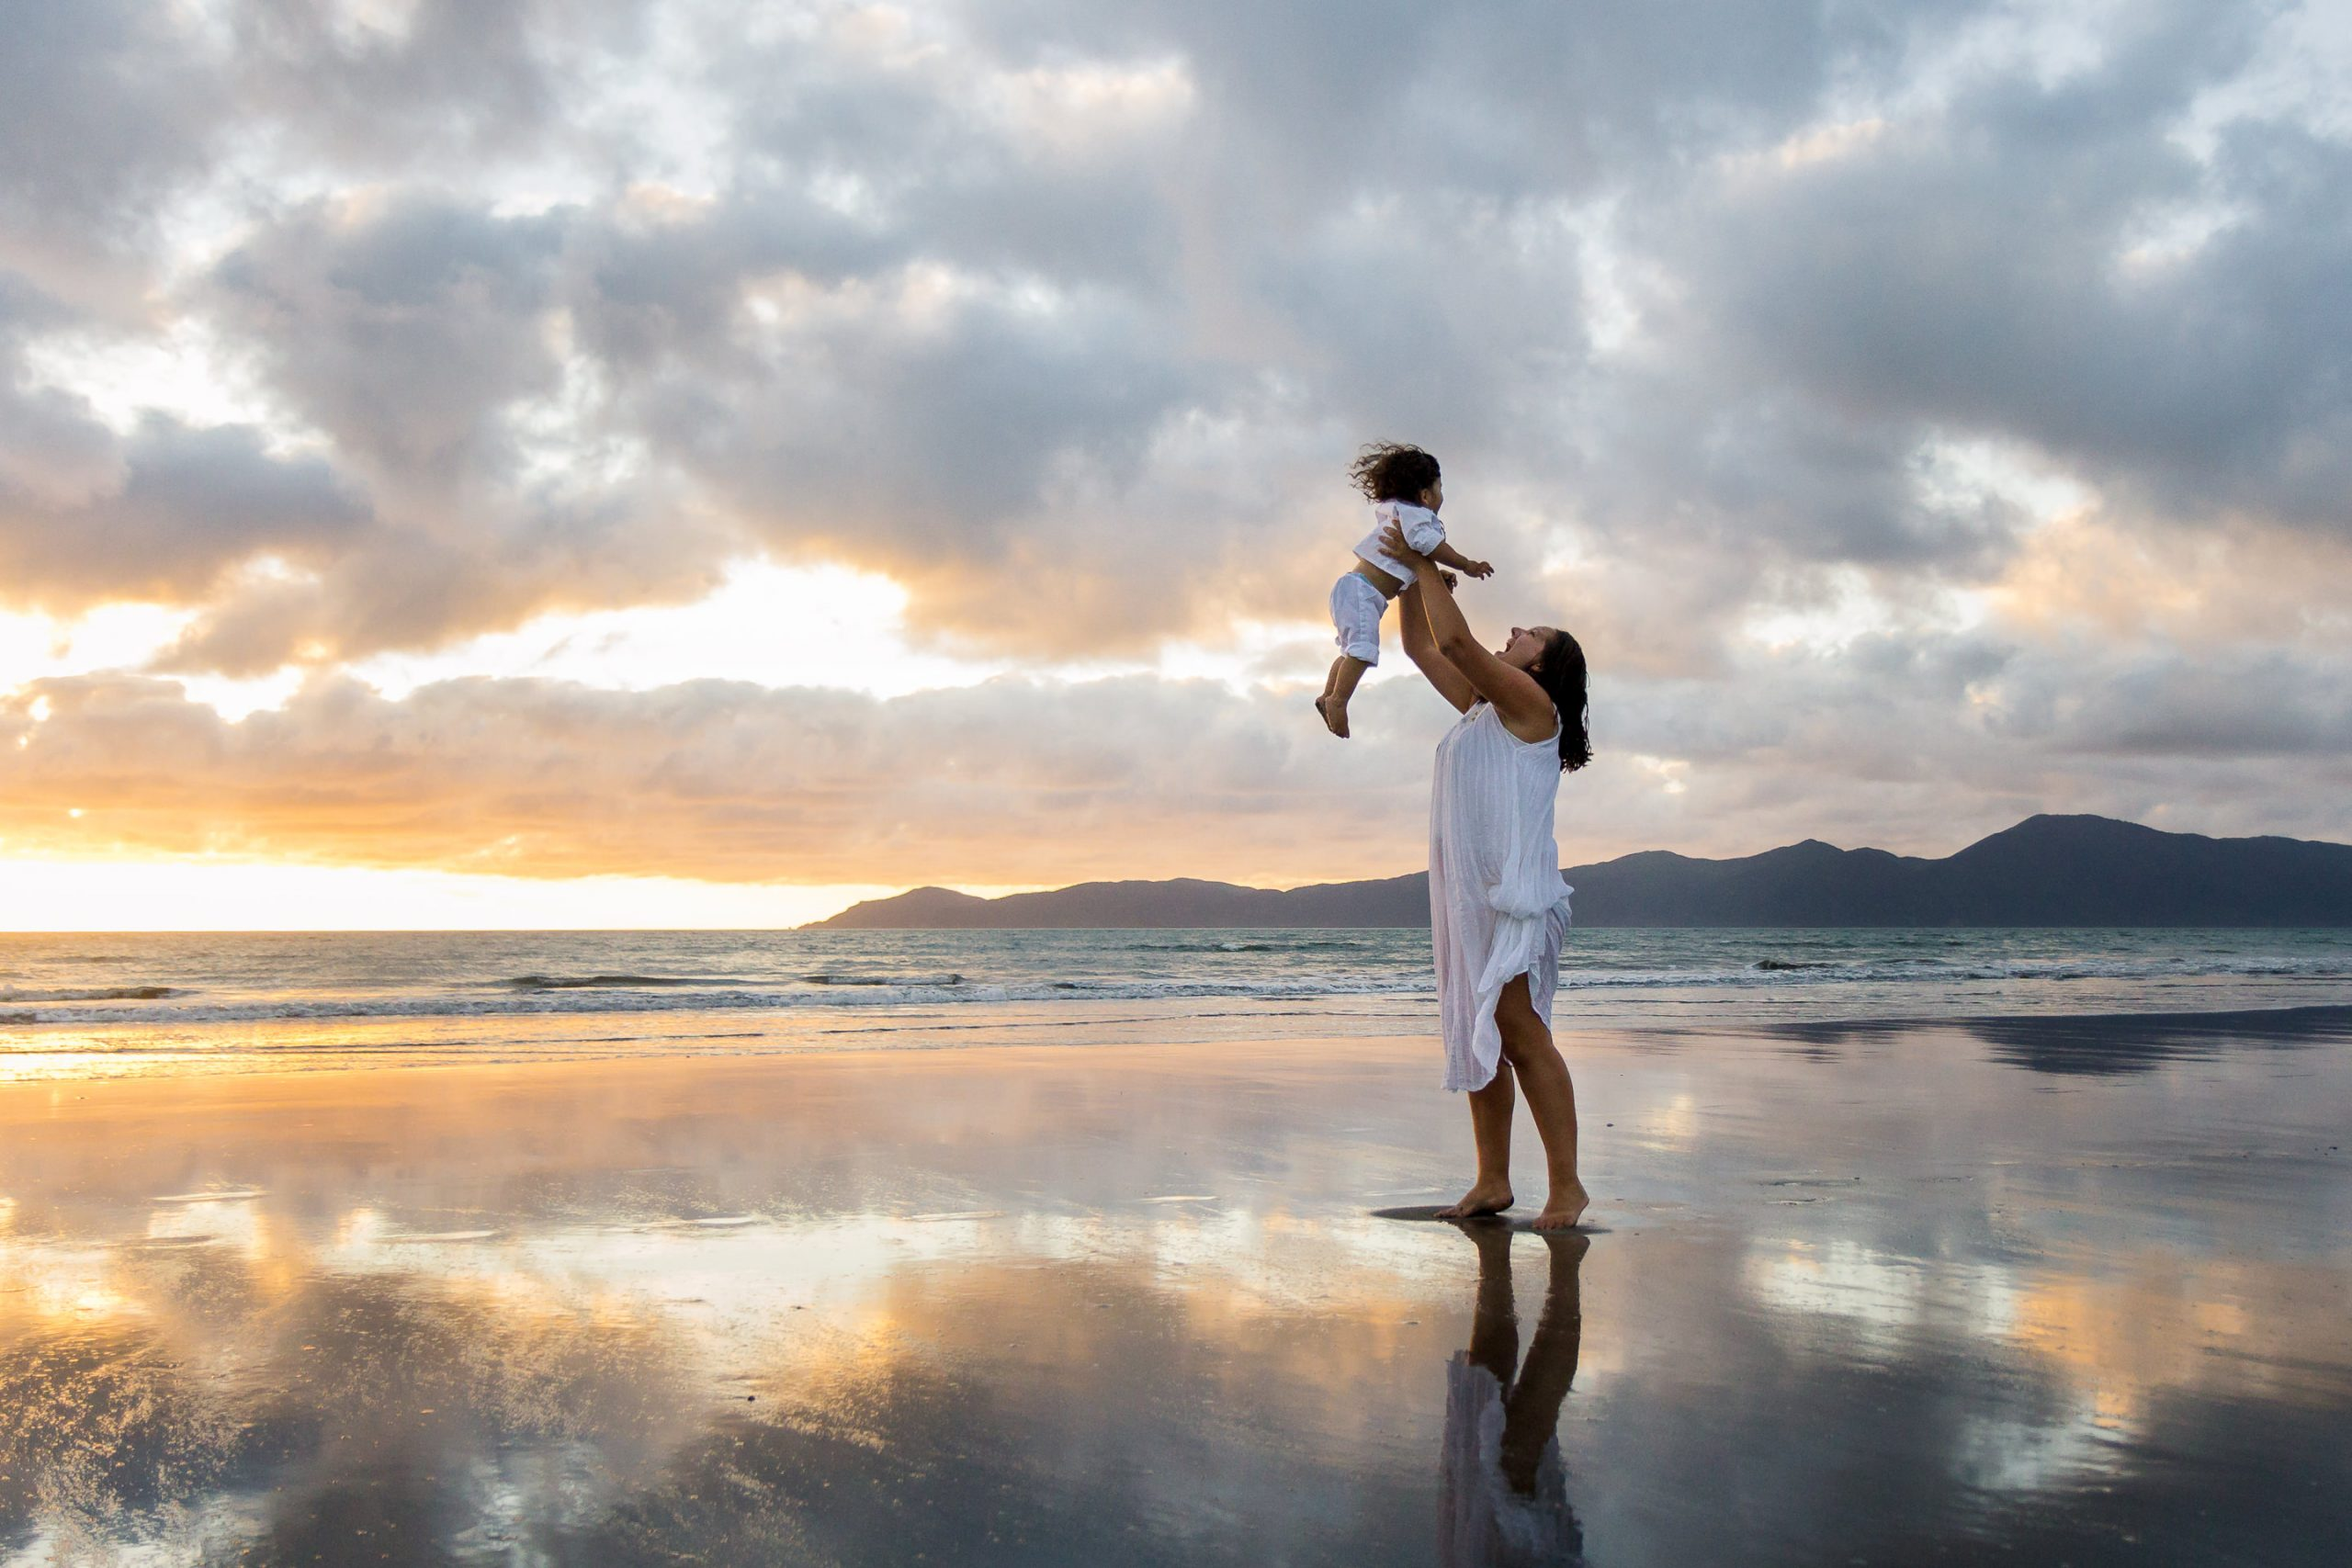 Mum standing on a Paraparaumu beach in front of Kapiti Island at sunset and holding up her little boy with reflections in the sand